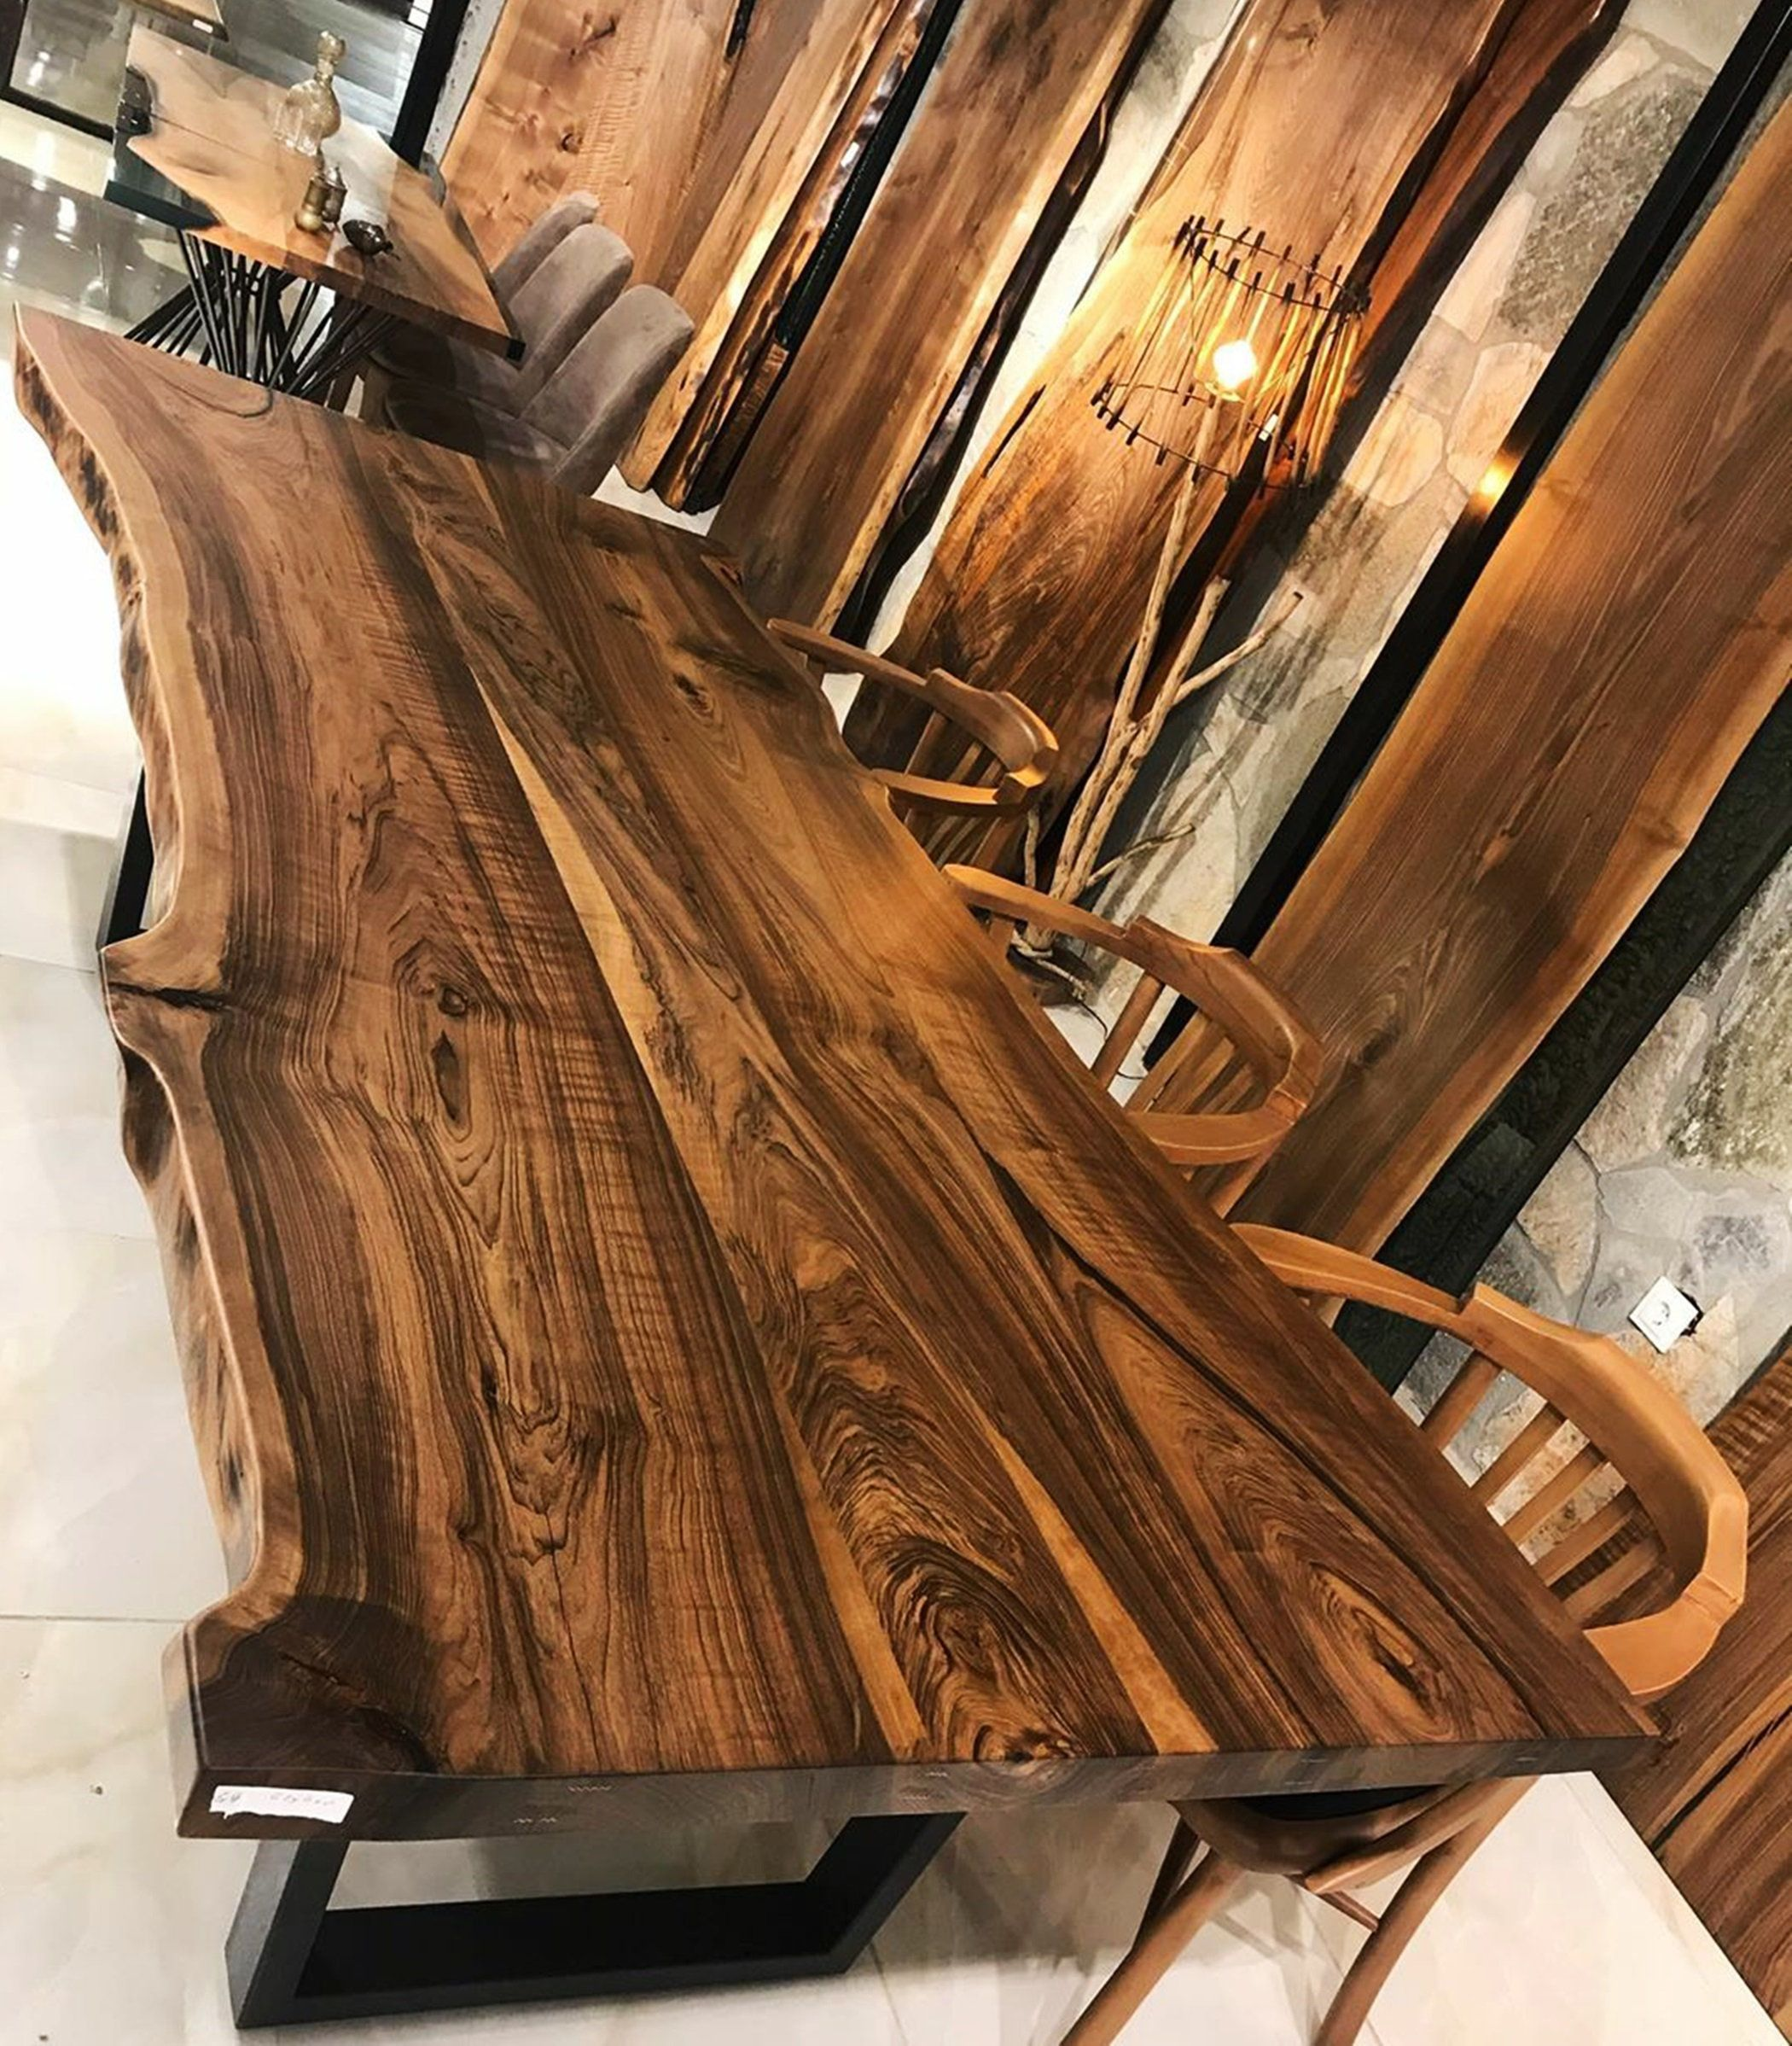 Live Edge Dining Table, Custom Dining Table, Conference Table, Live Edge Walnut Desk, Office Table, Counter height table